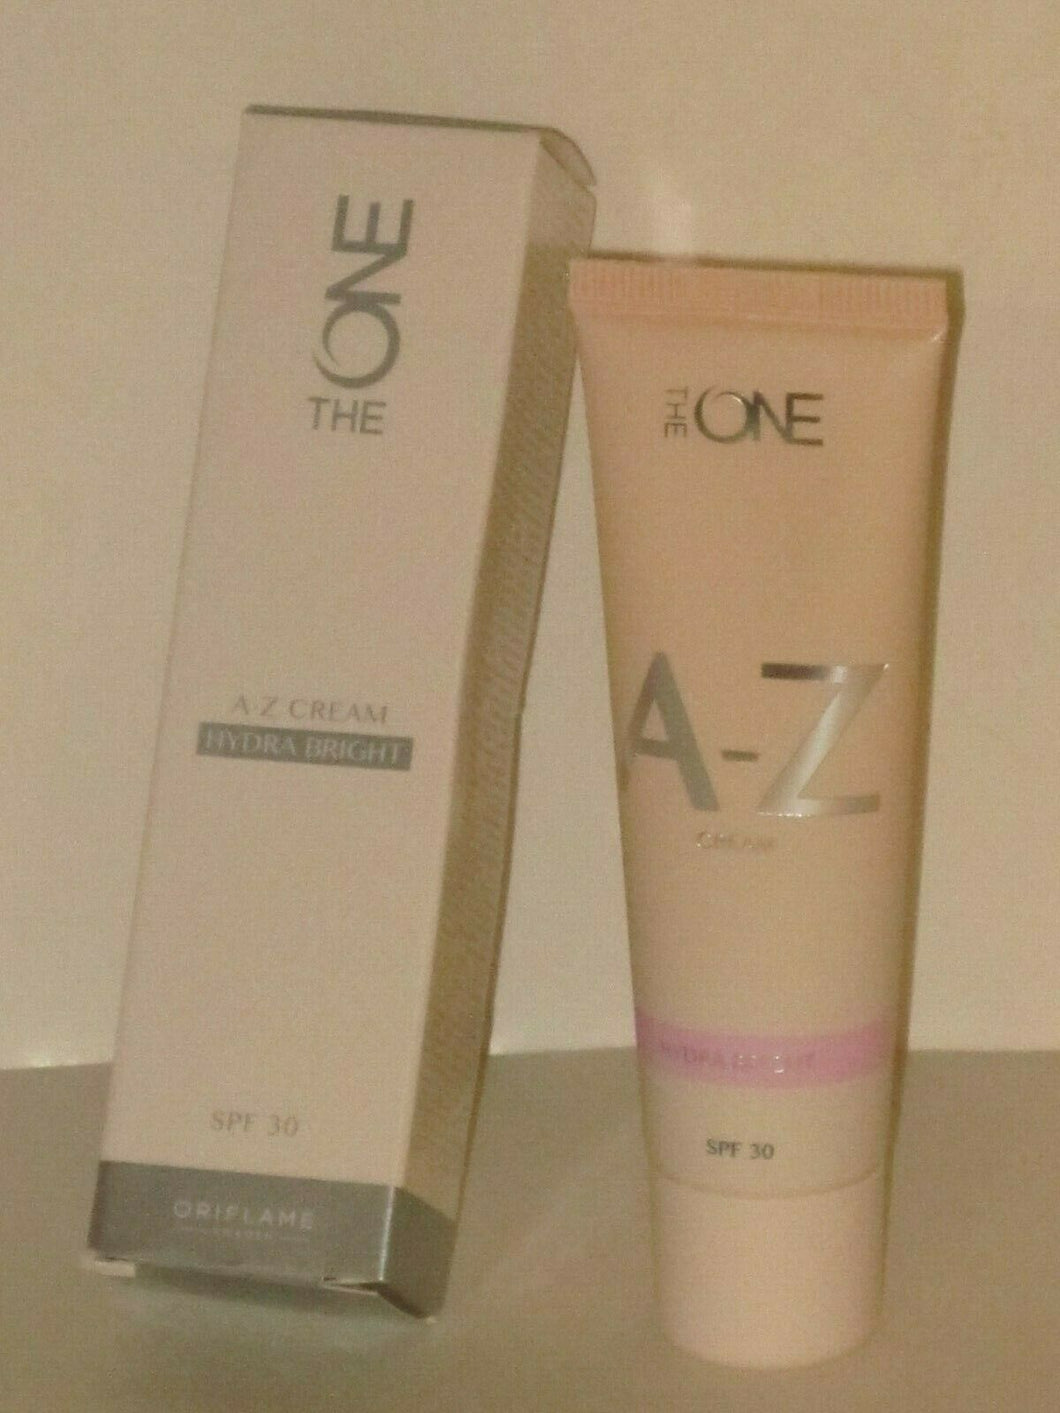 ORIFLAME SWEDEN THE ONE A-Z CREAM HYDRA BRIGHT SPF 30 - #PORCELAIN 30 ml NEW!